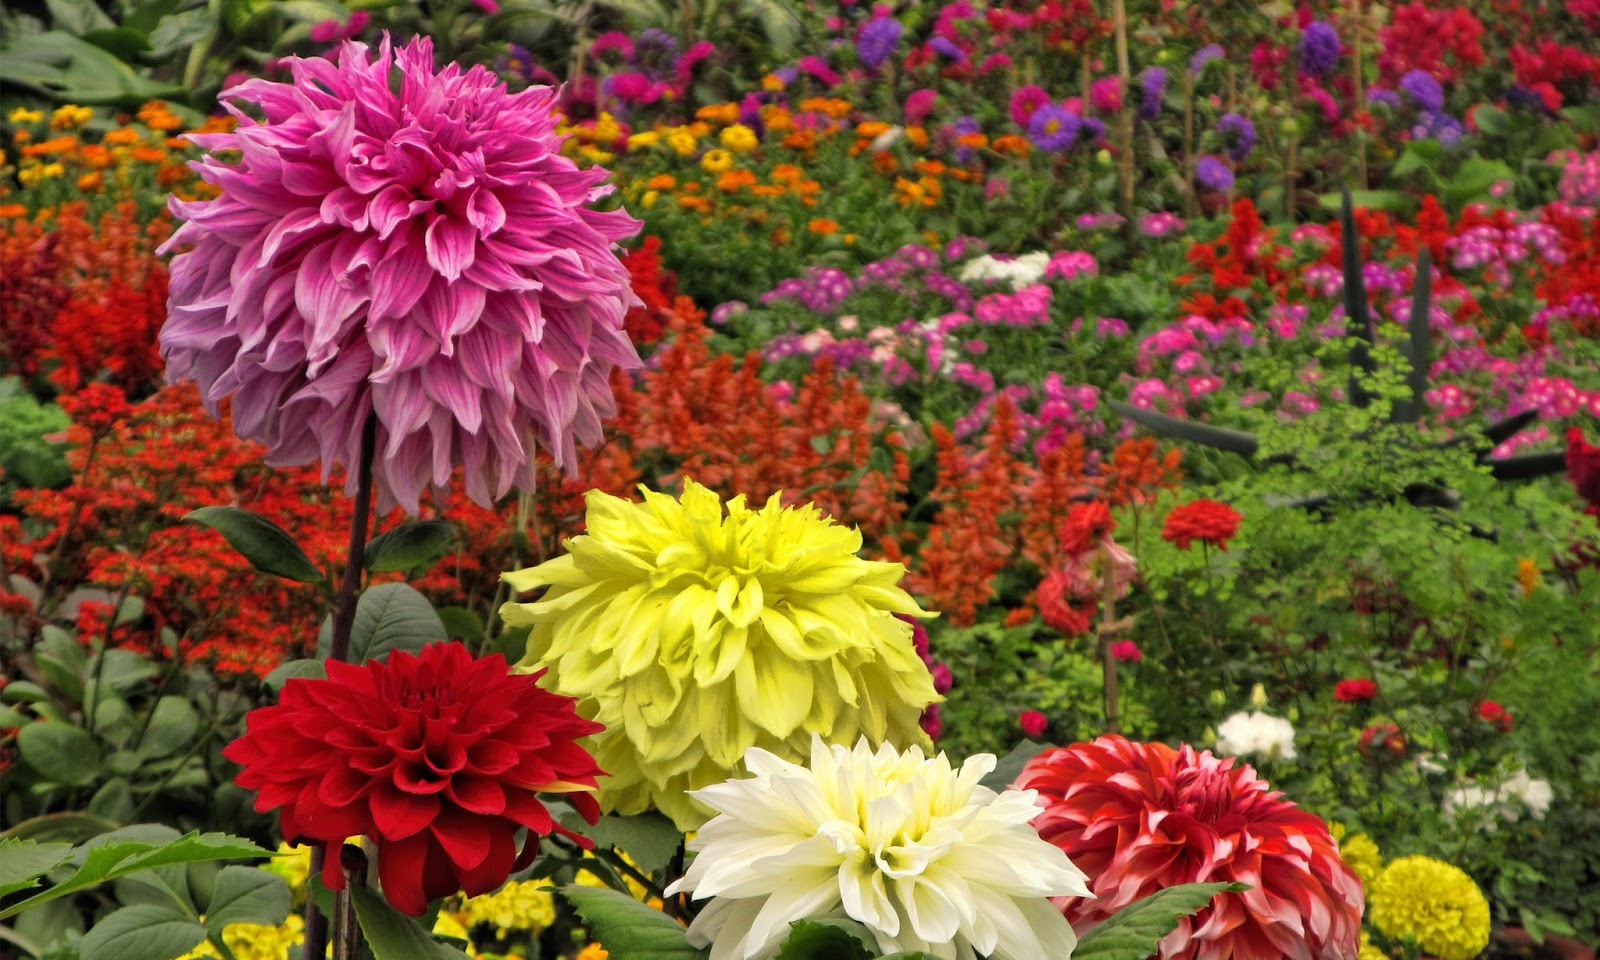 Dahlia Flower Hd Wallpapers Hd Wallpapers High Definition Free